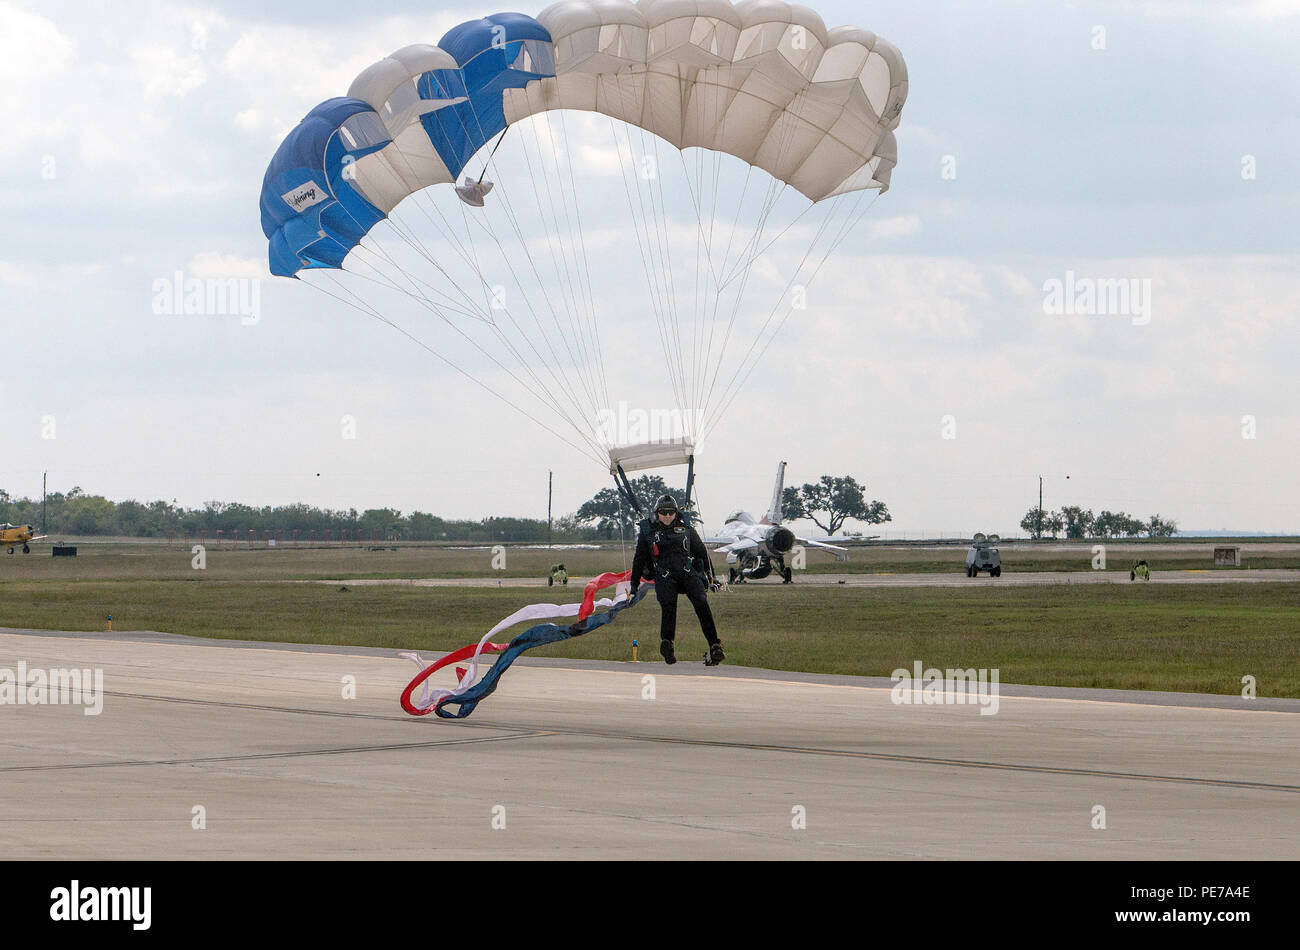 U.S. Air Force Academy Wings of Blue team member lands during the 2015 Joint Base San Antonio Air Show and Open House Nov. 1, 2015 at JBSA-Randolph, Texas. Air shows allow the Air Force to display the capabilities of our aircraft to the American taxpayer through aerial demonstrations and static displays and allowing attendees to get up close and personal to see some of the equipment and aircraft used by the U.S. military today. (U.S. Air Force photo by Johnny Saldivar) Stock Photo